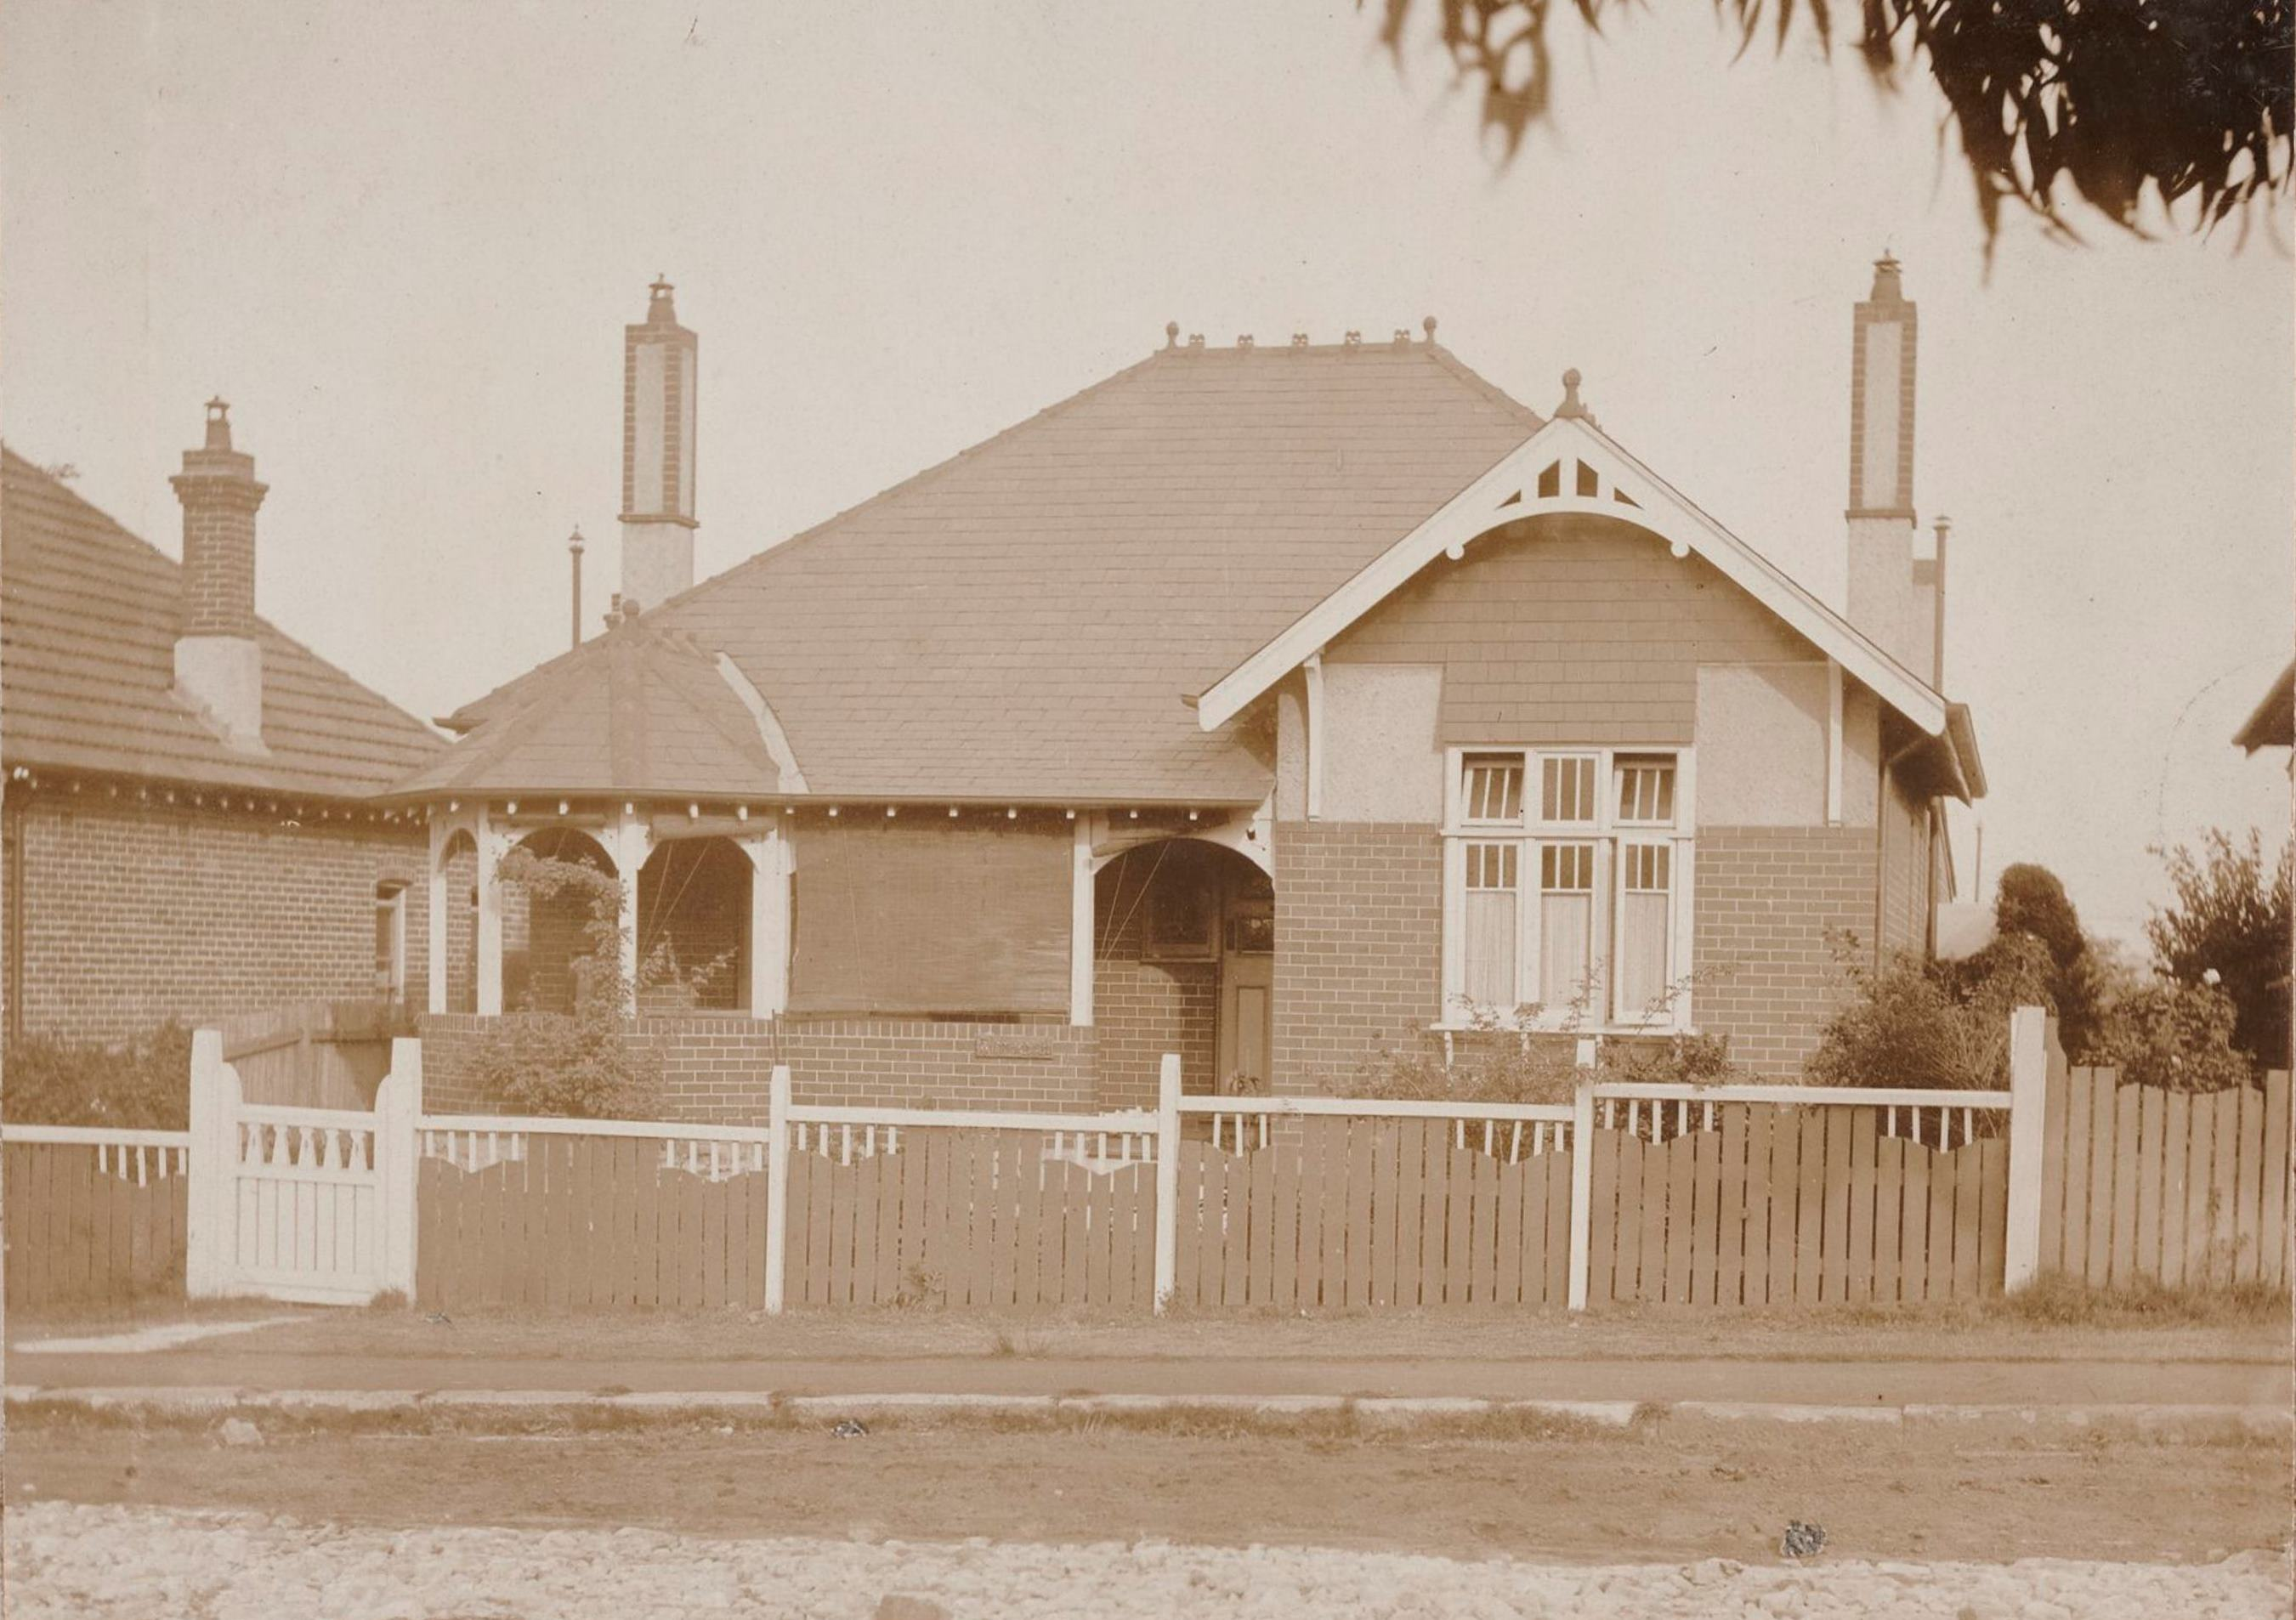 Winmarleigh, 17 Rogers Avenue, Haberfield, N.S.W. around 1913 / photographer unknown